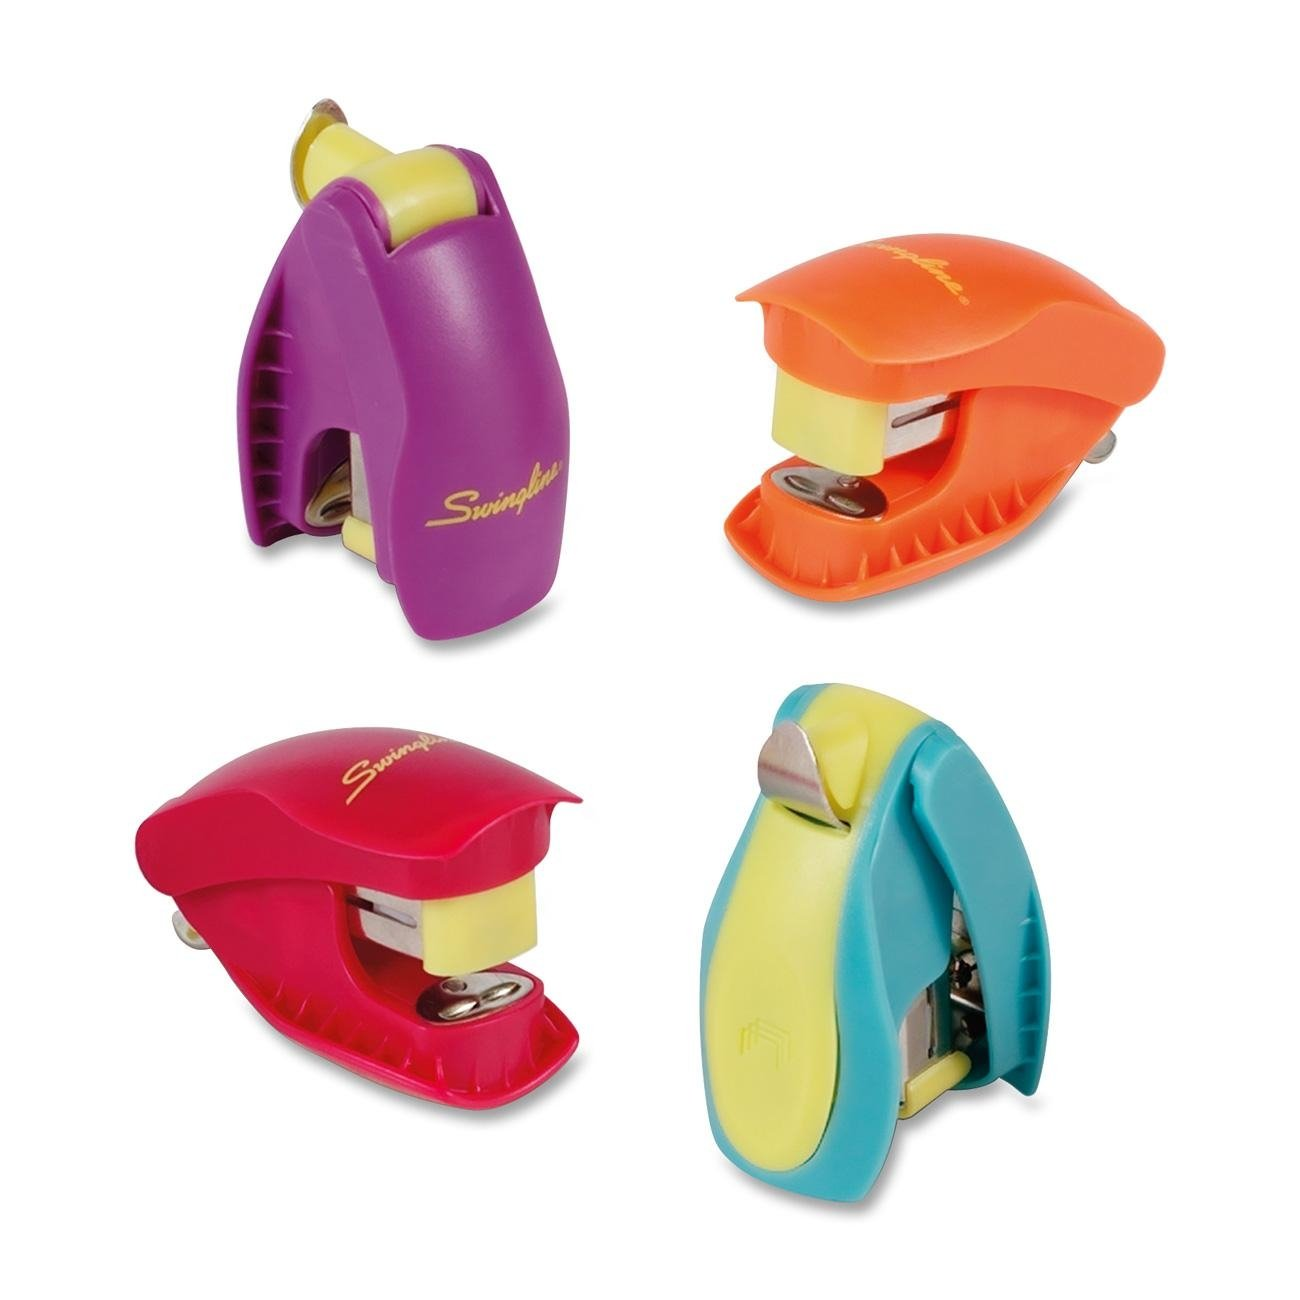 Swingline Tot Grip Miniature Stapler, 12 Sheet Capacity, Includes 1,000 Staples, Assorted Colors, Color May Vary (S7079168R) ACCO Brands Canada Inc.